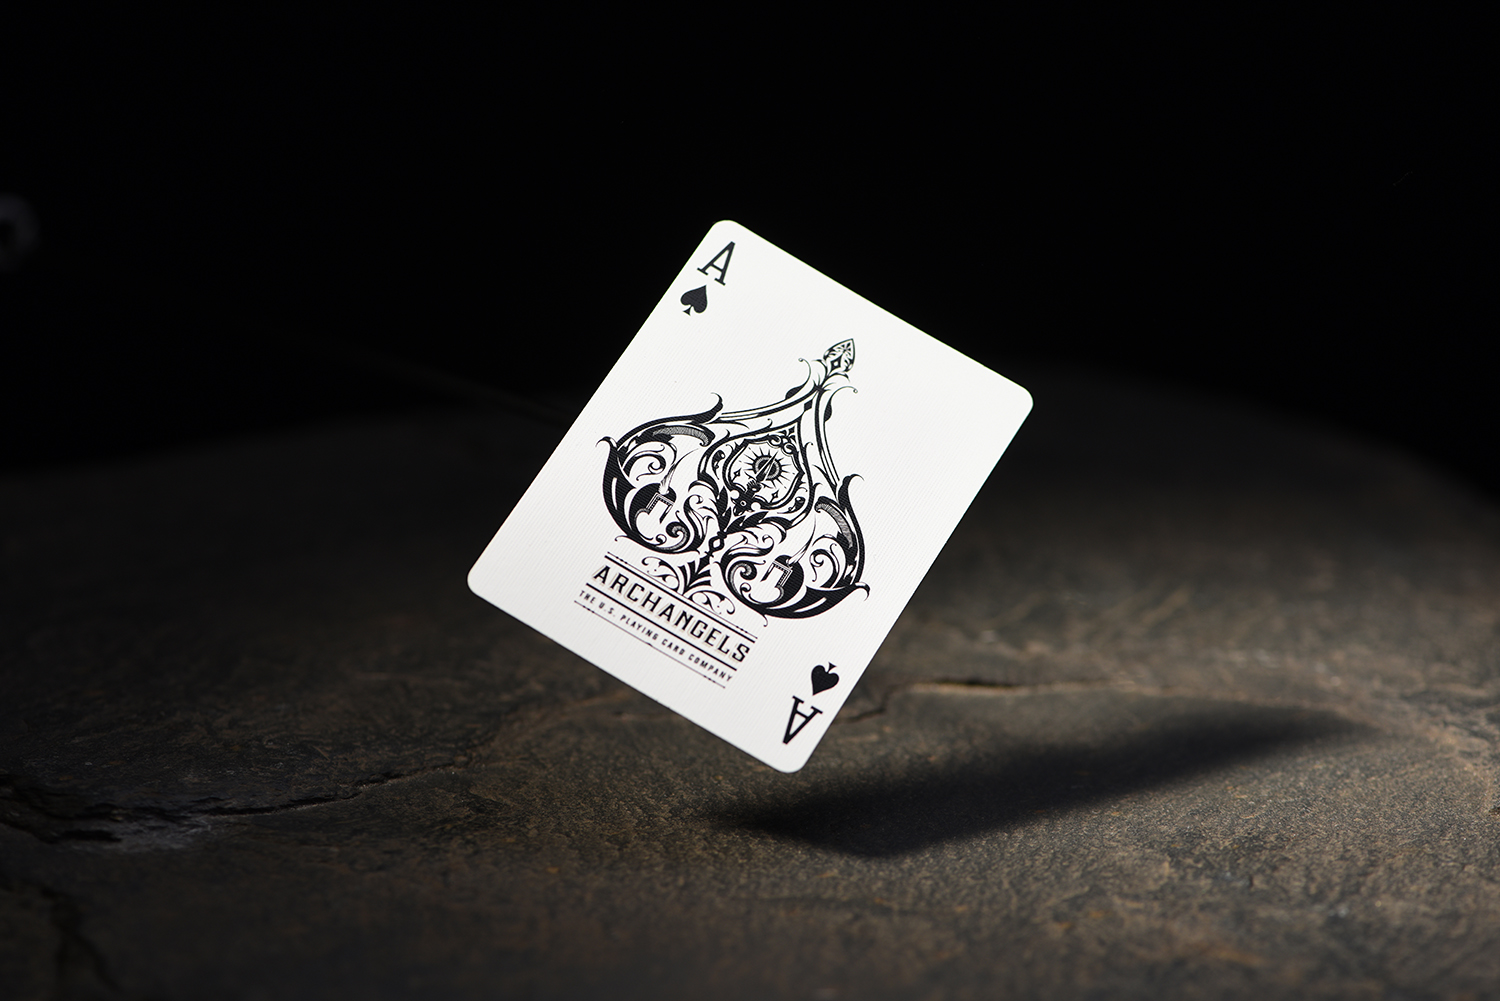 Falling Ace of spades to illustrate Product Photography